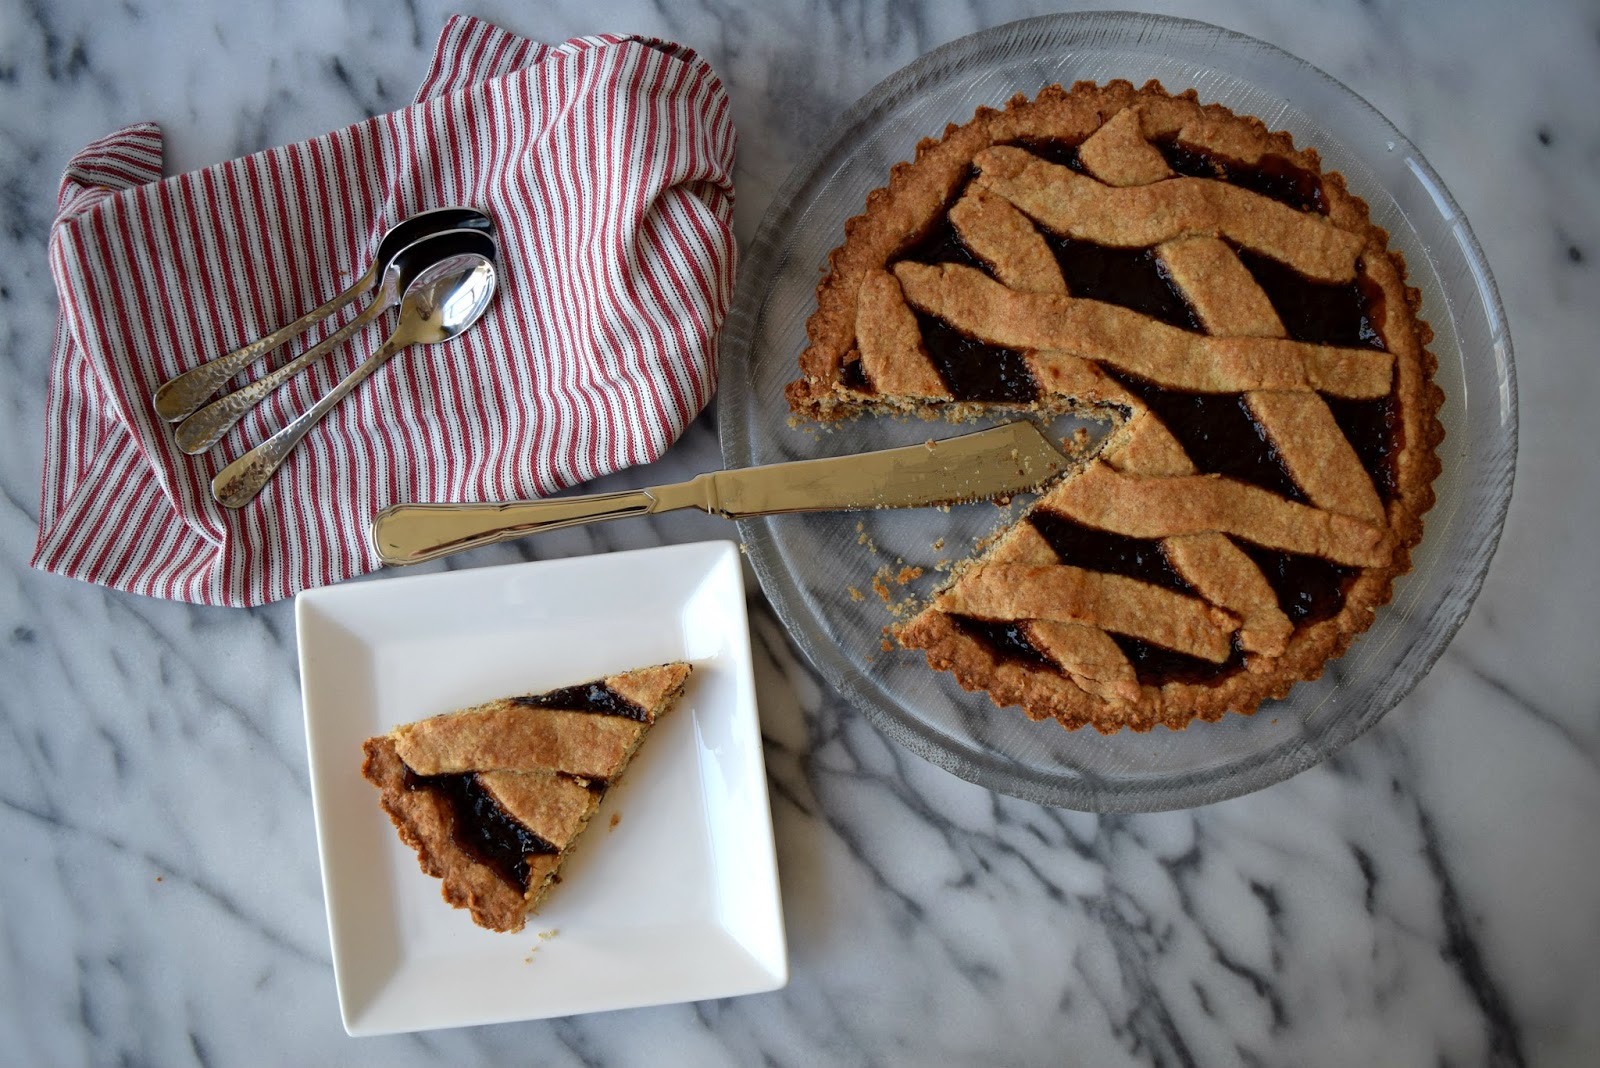 Wholewheat crostata